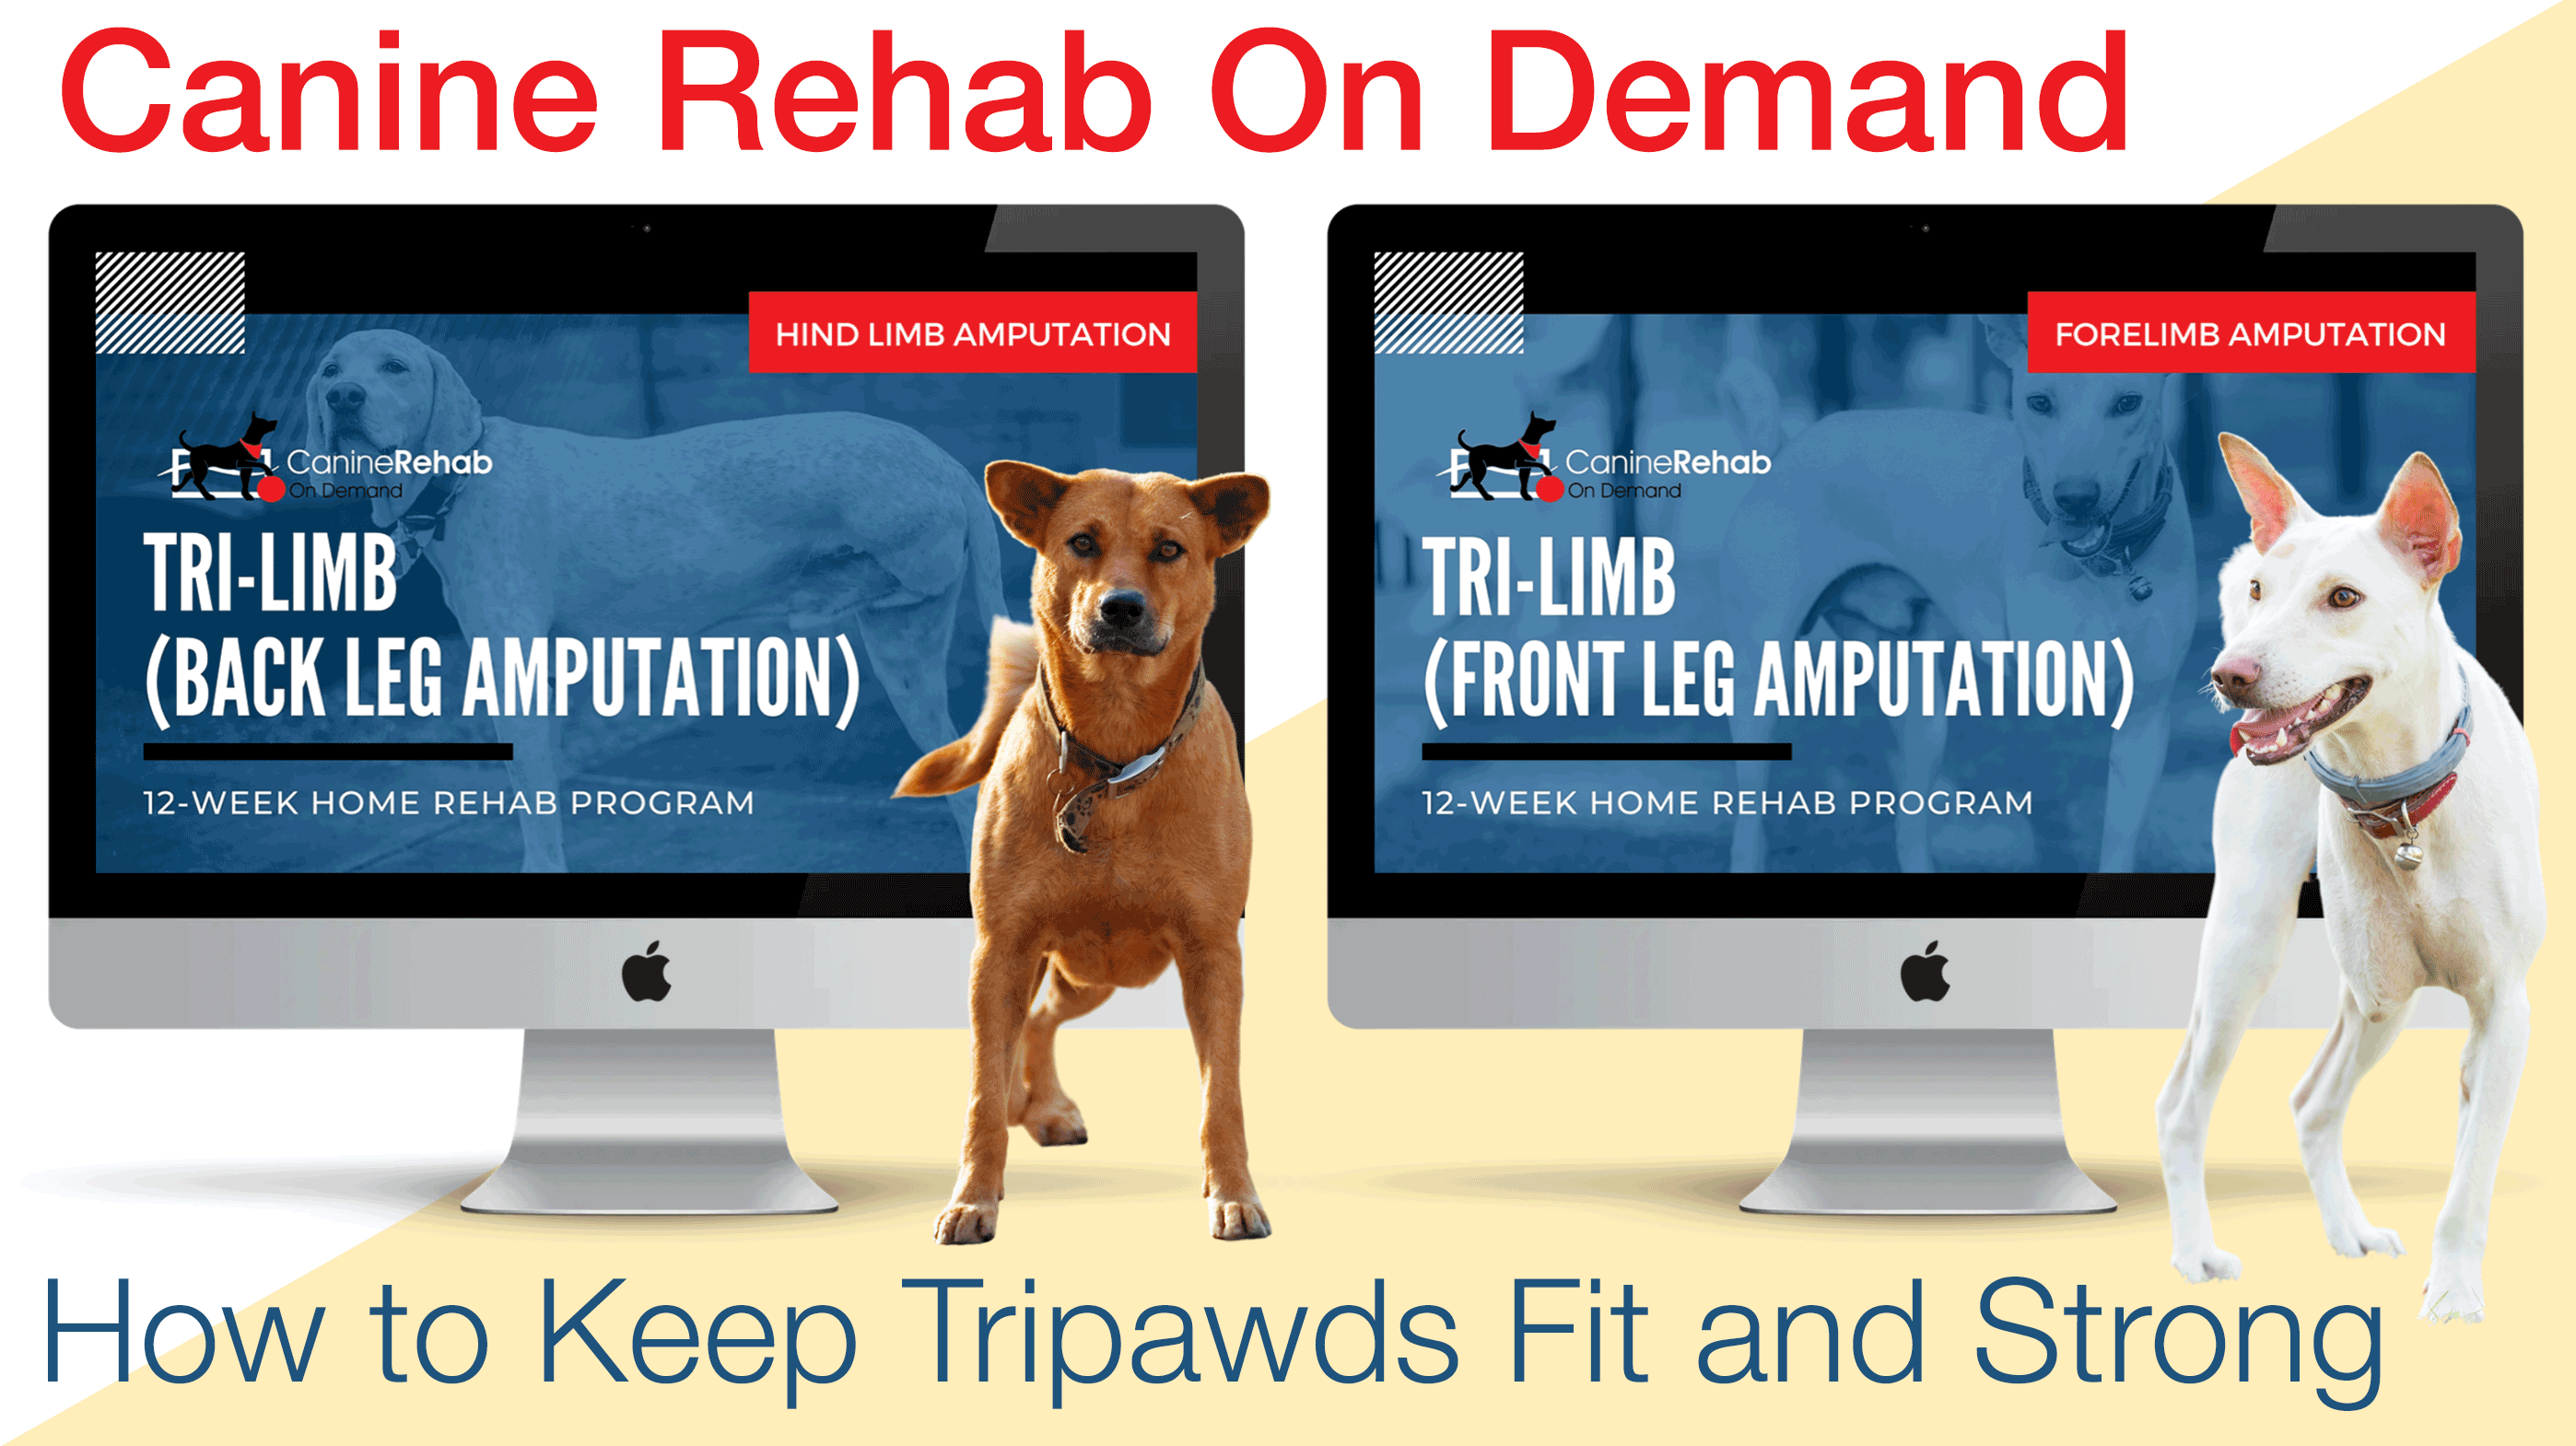 Canine Rehab On Demand